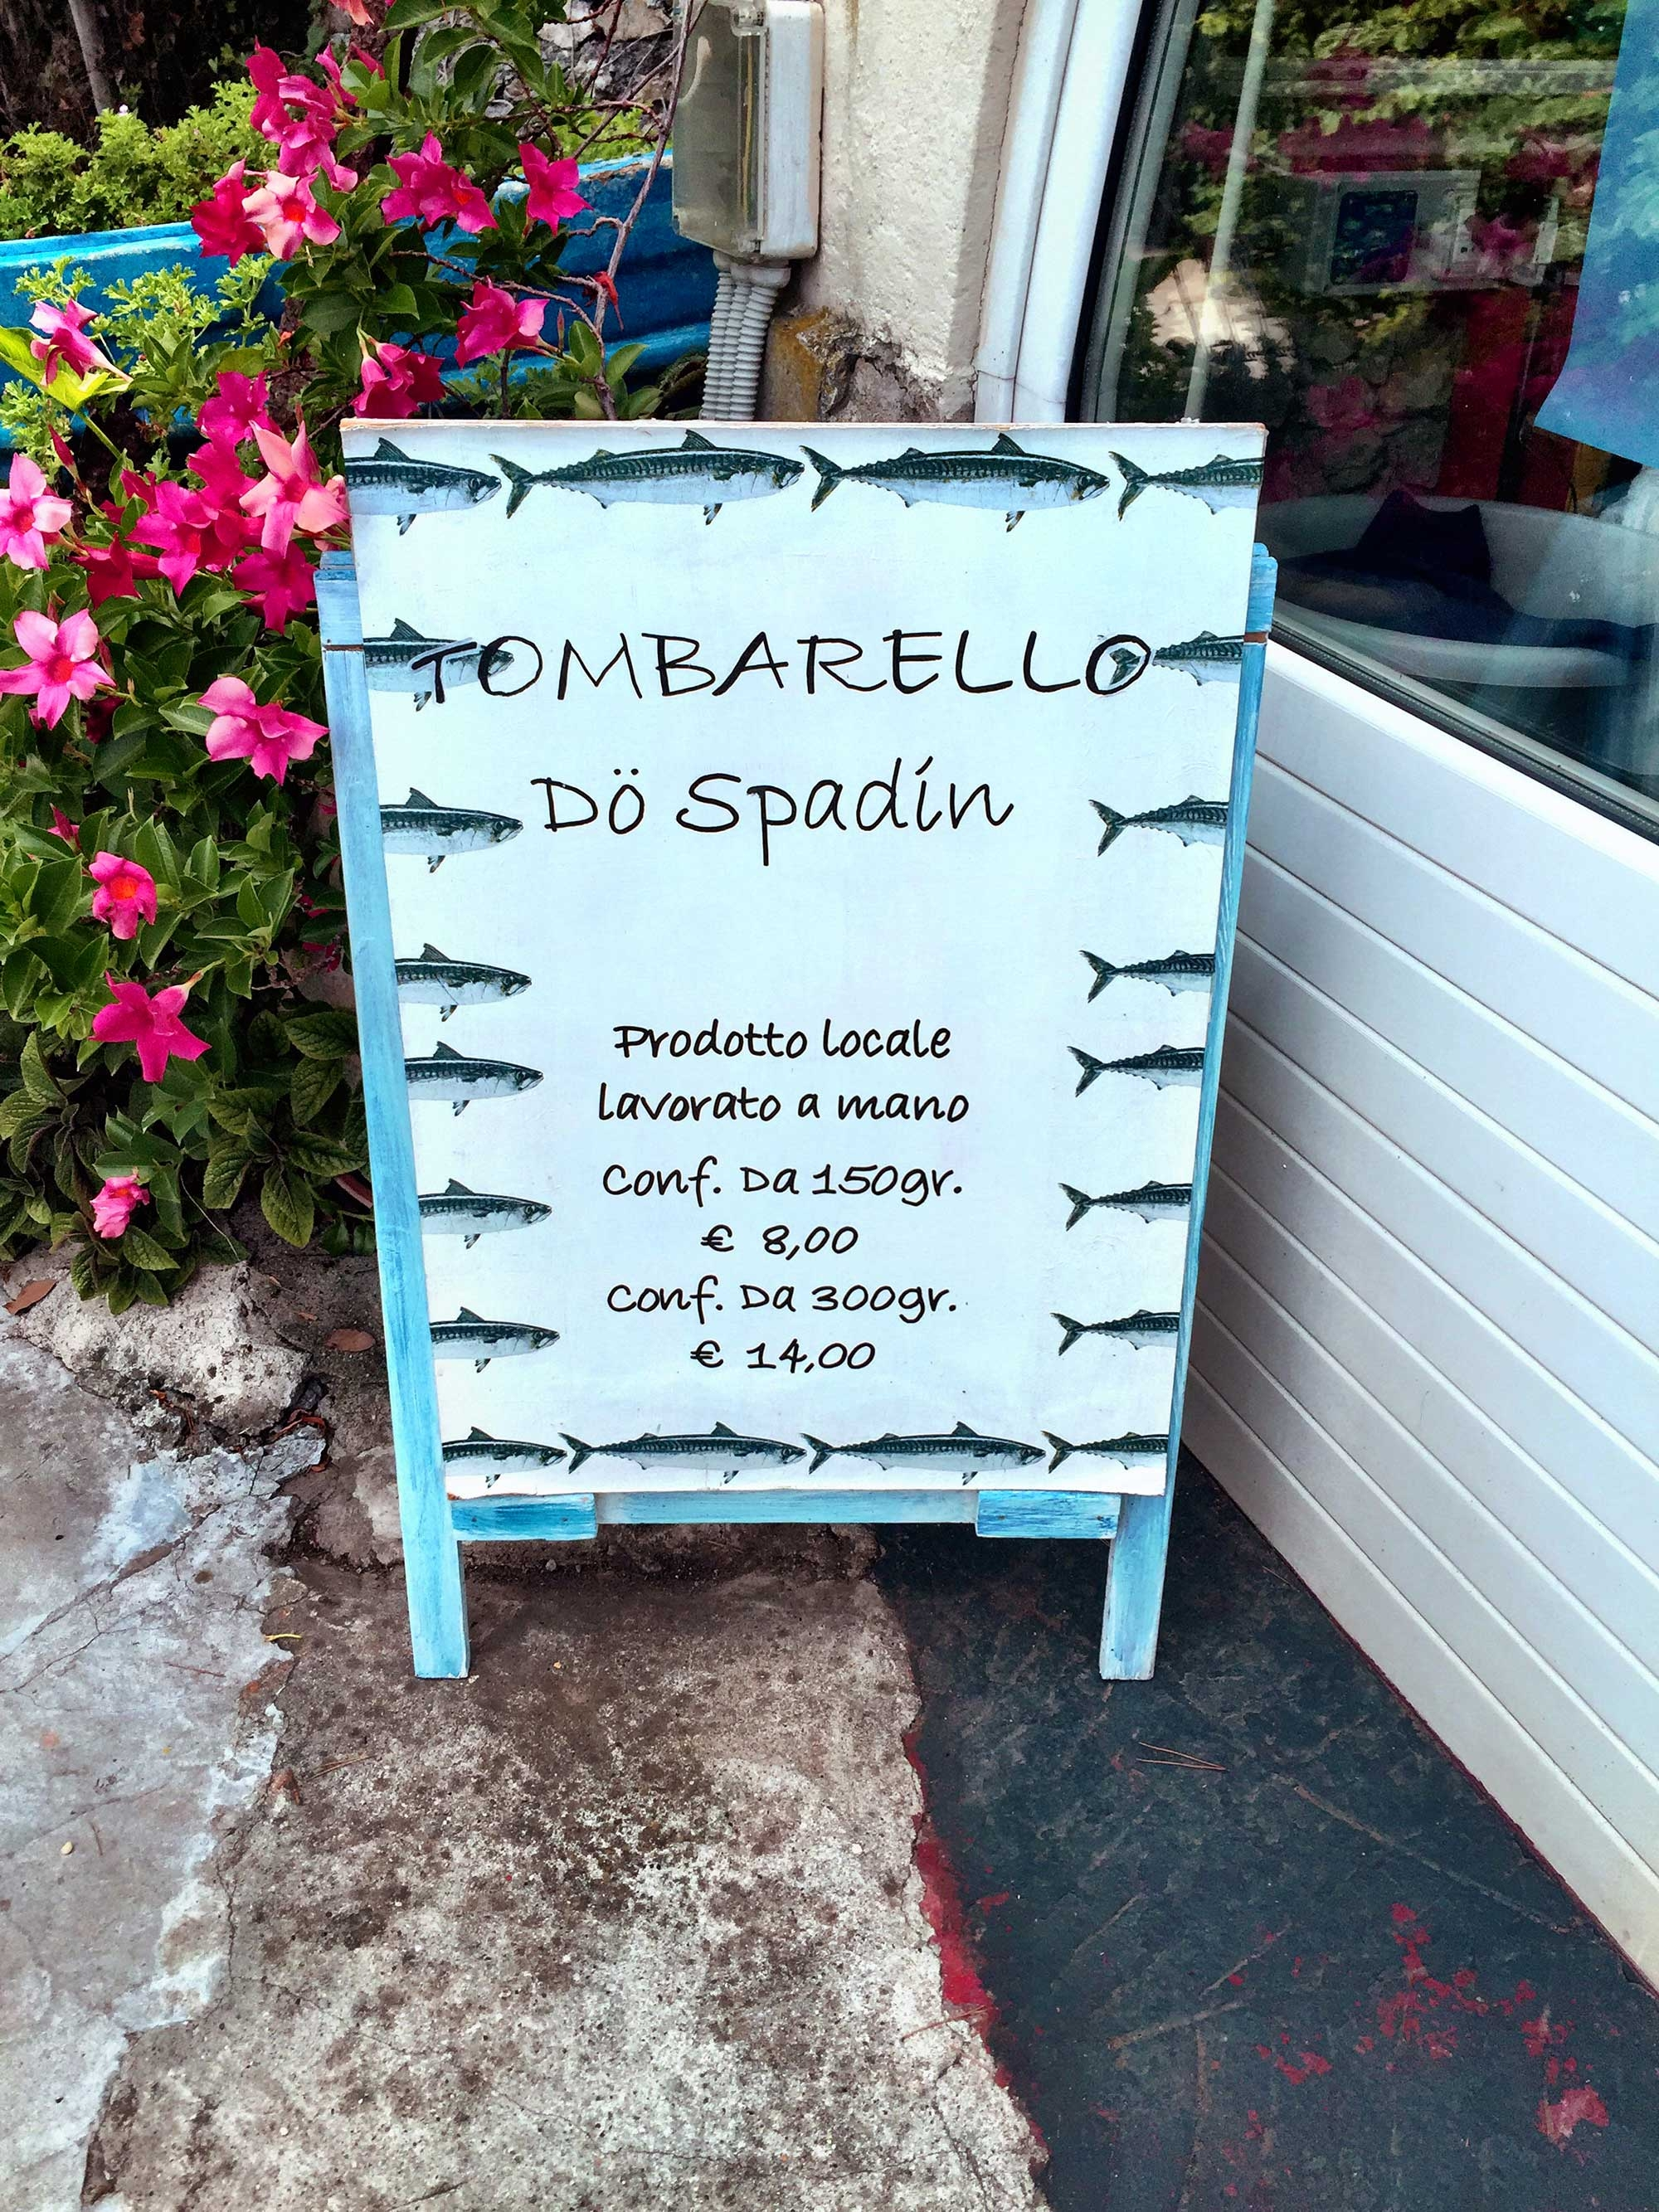 A blue sign sits outside a restaurant advertising a seafood lunch in Italian